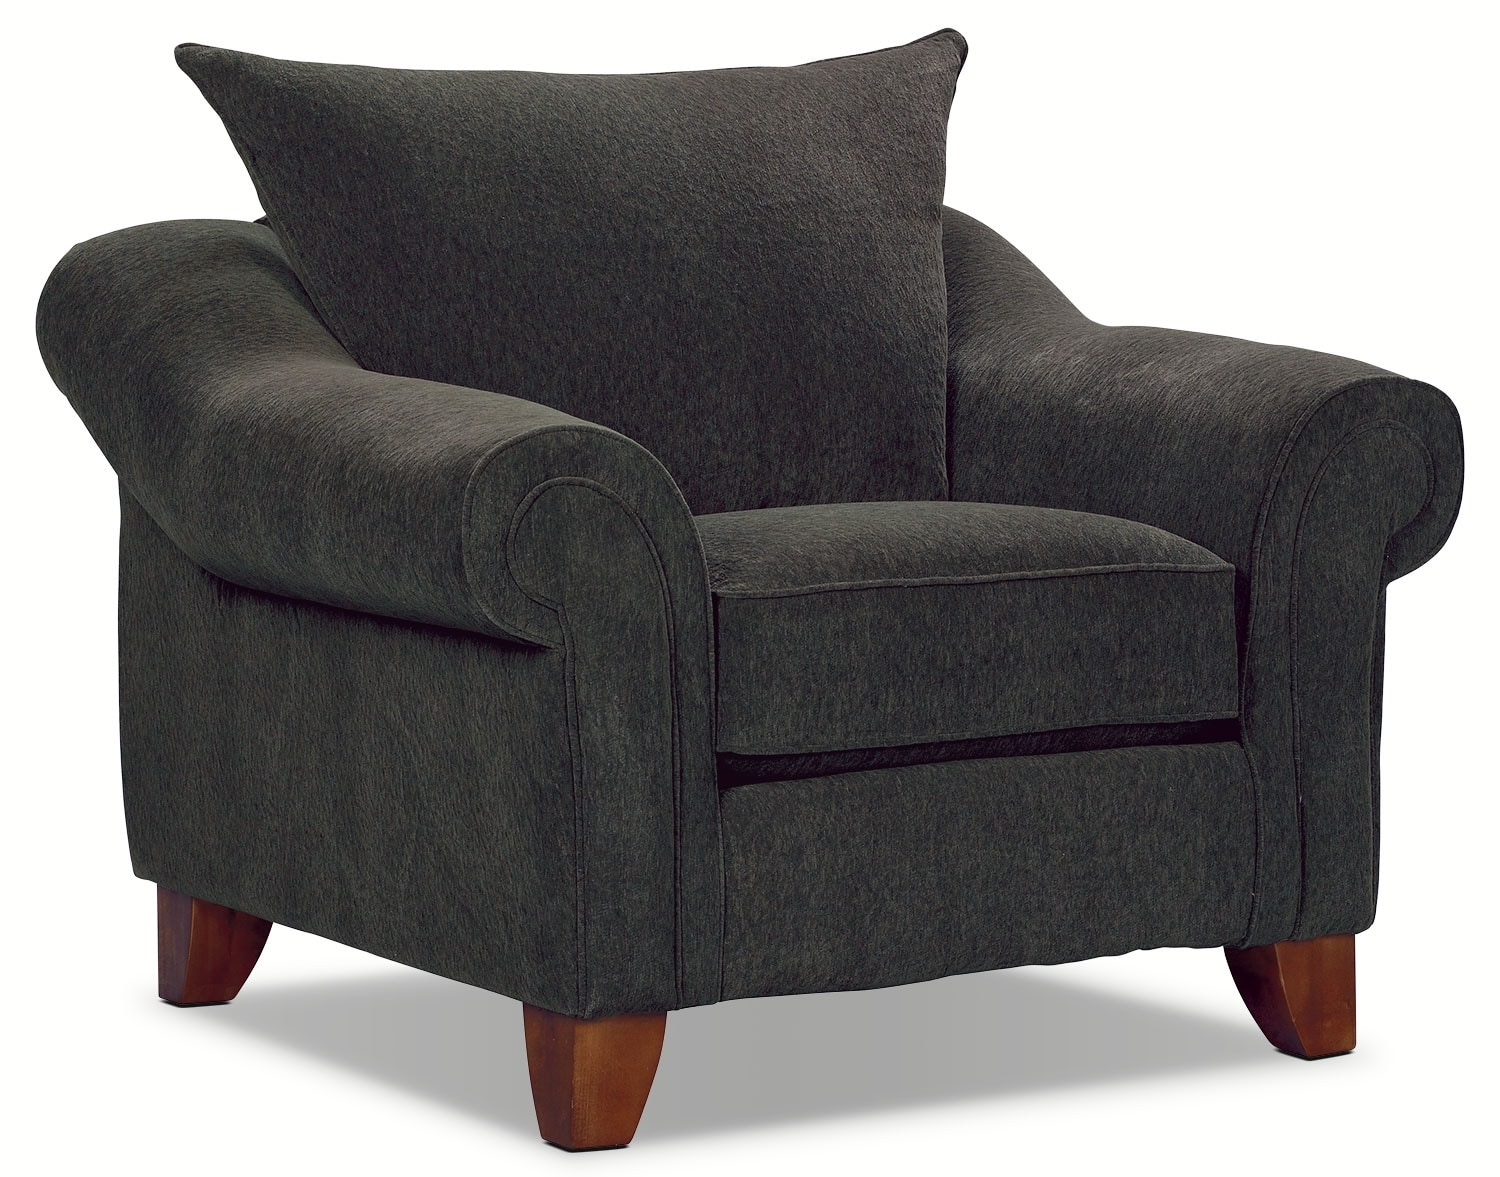 Living Room Furniture - Reese Chenille Chair - Dark Grey